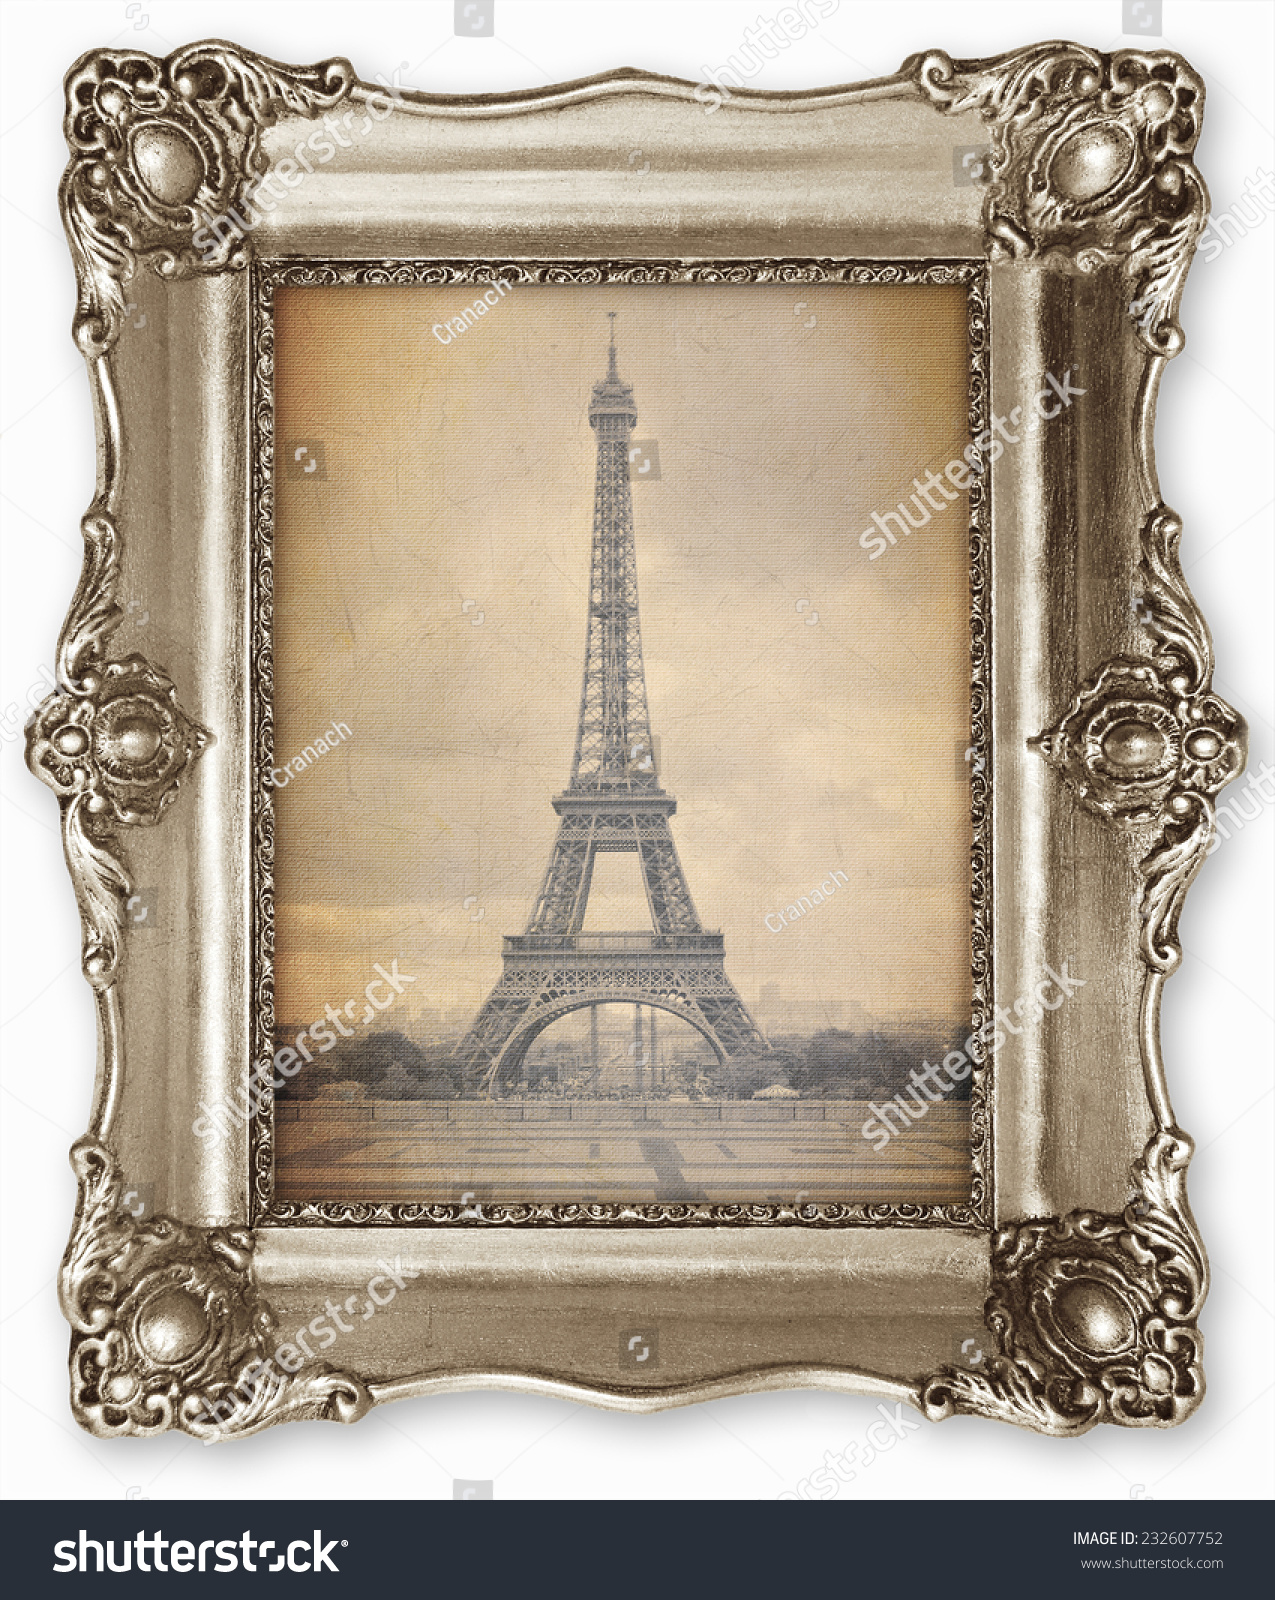 old vintage frame stylized eiffel tower stock photo 232607752 shutterstock - Eiffel Tower Picture Frame